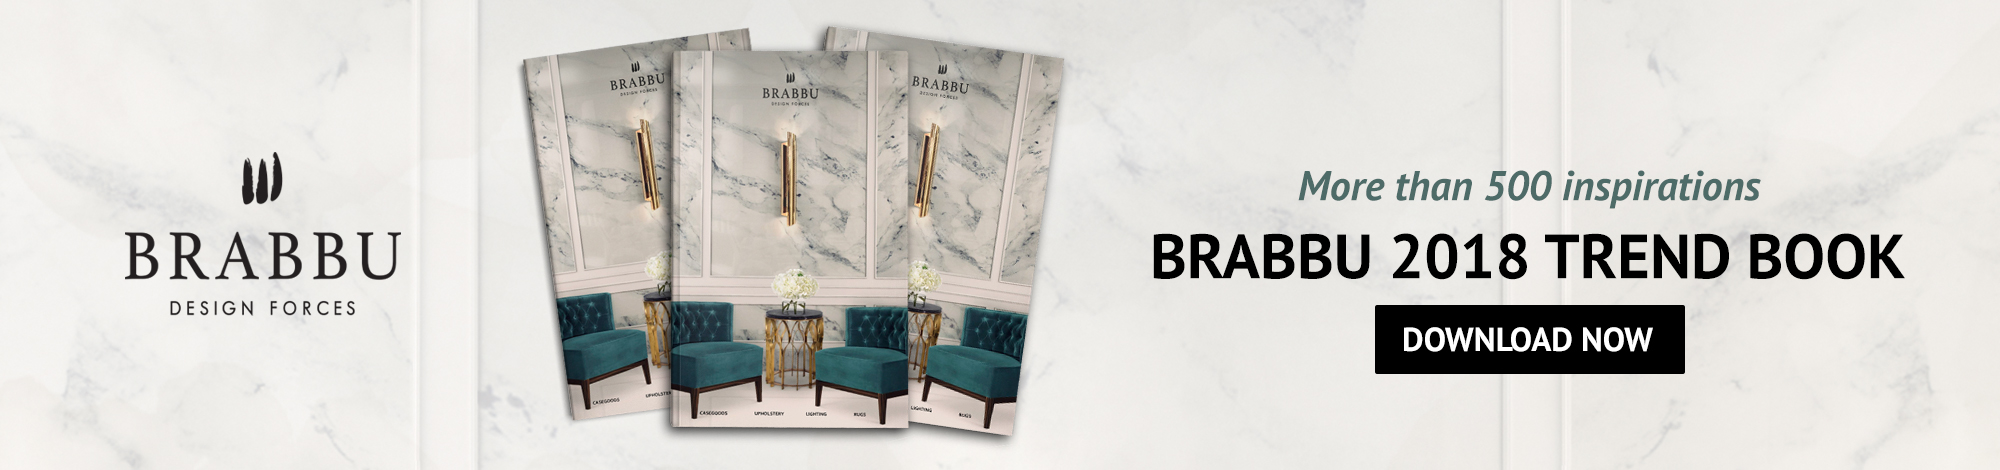 BRABBU Catalogue  High Point Market 2015 Best of Luxury Goods  1C5EB82328DCFD5BD10428DB124BD945082C079483CACCDD2D pimgpsh fullsize distr